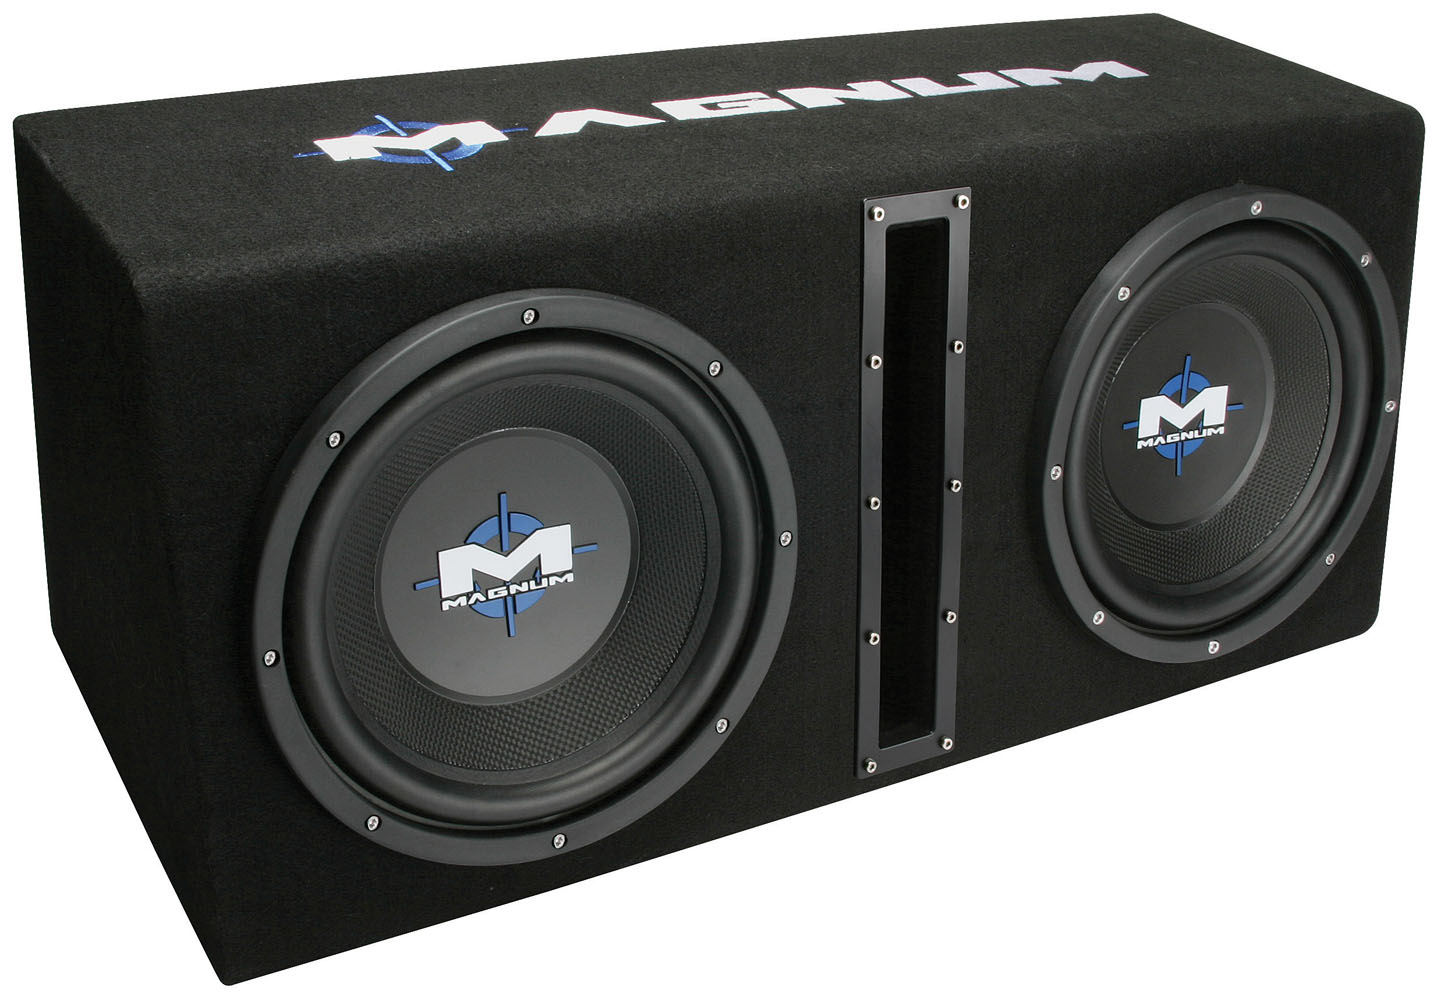 Mb210sp dual 10 subwoofer enclosure and amplifier party pack picture of magnum mb210sp dual 10 inch 400w rms vented enclosure with amplifier publicscrutiny Images